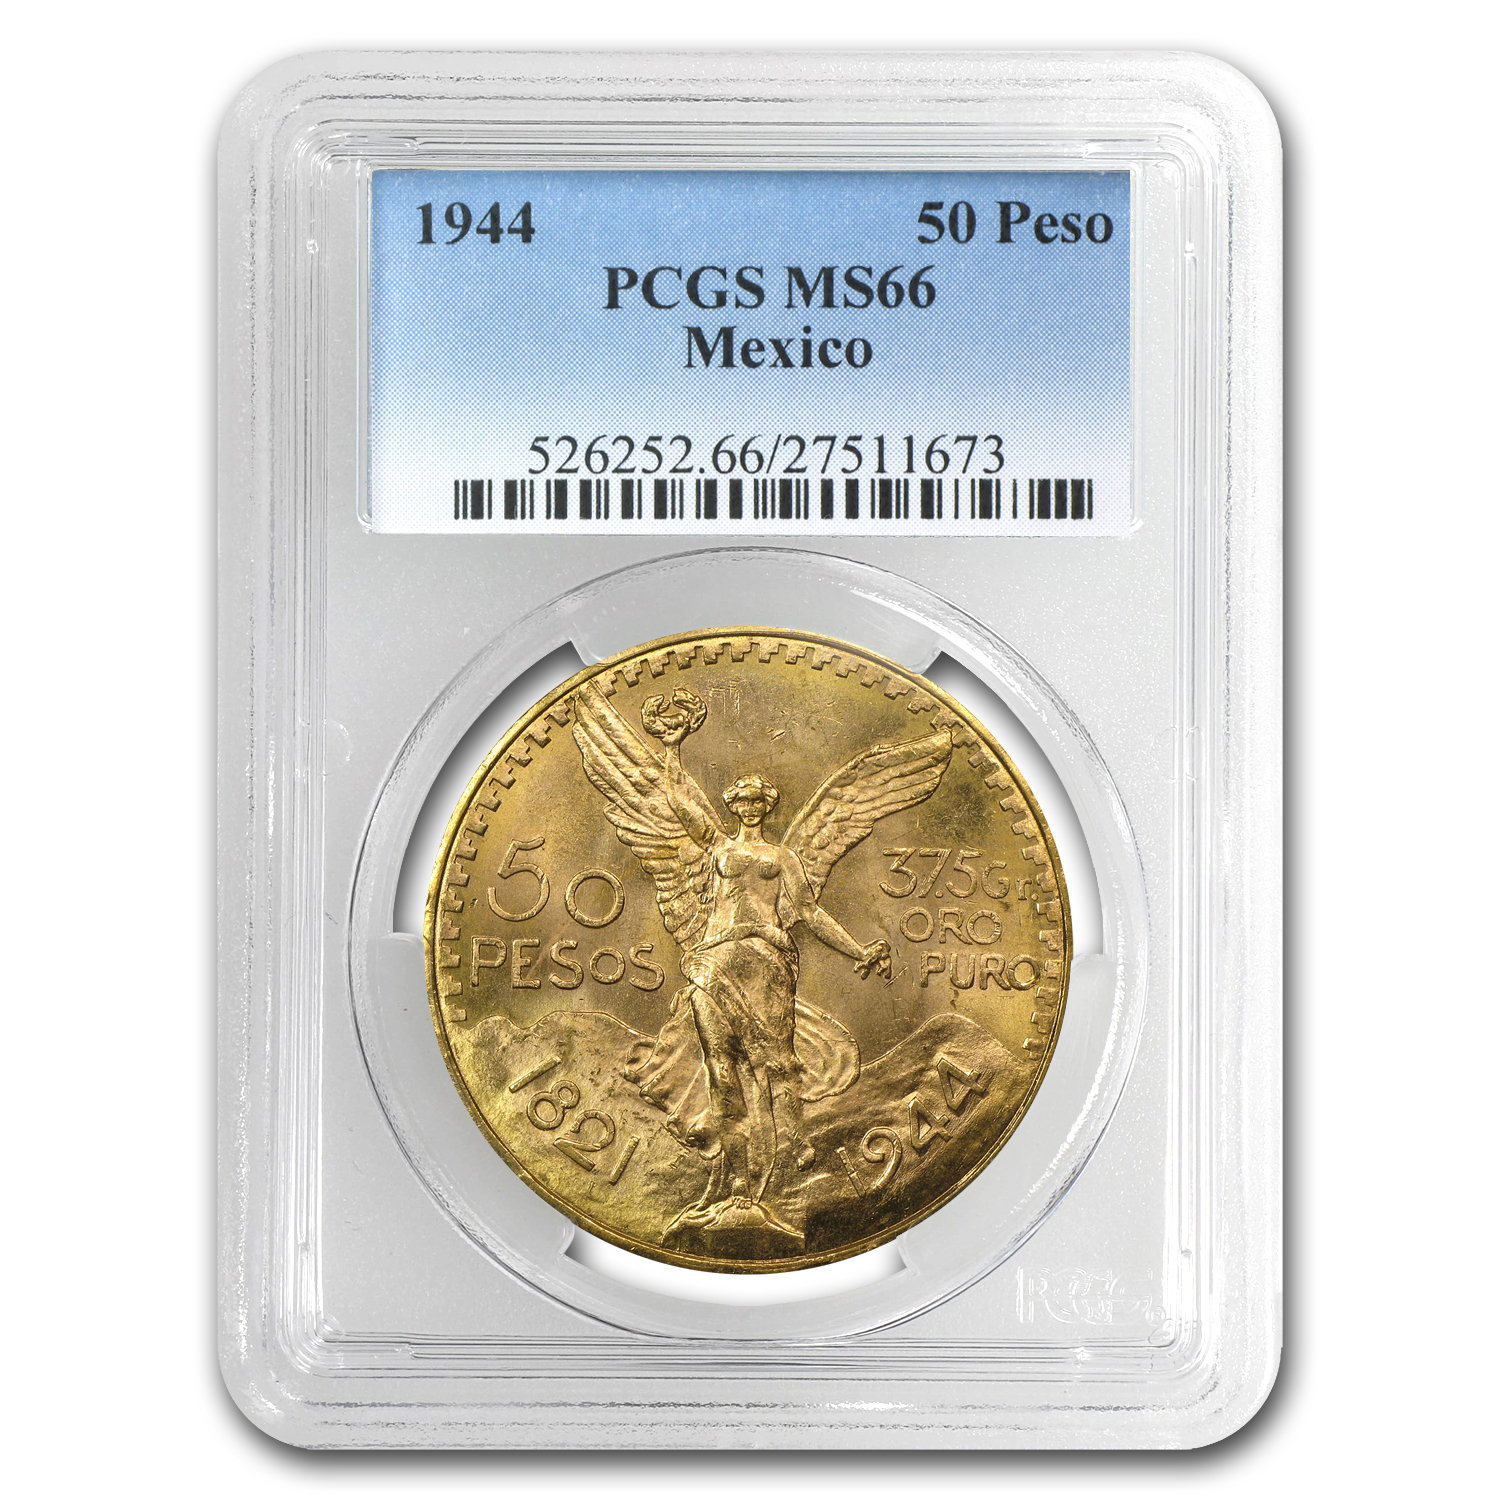 Mexico 1944 50 Pesos Gold MS-66 PCGS (Finest Known)